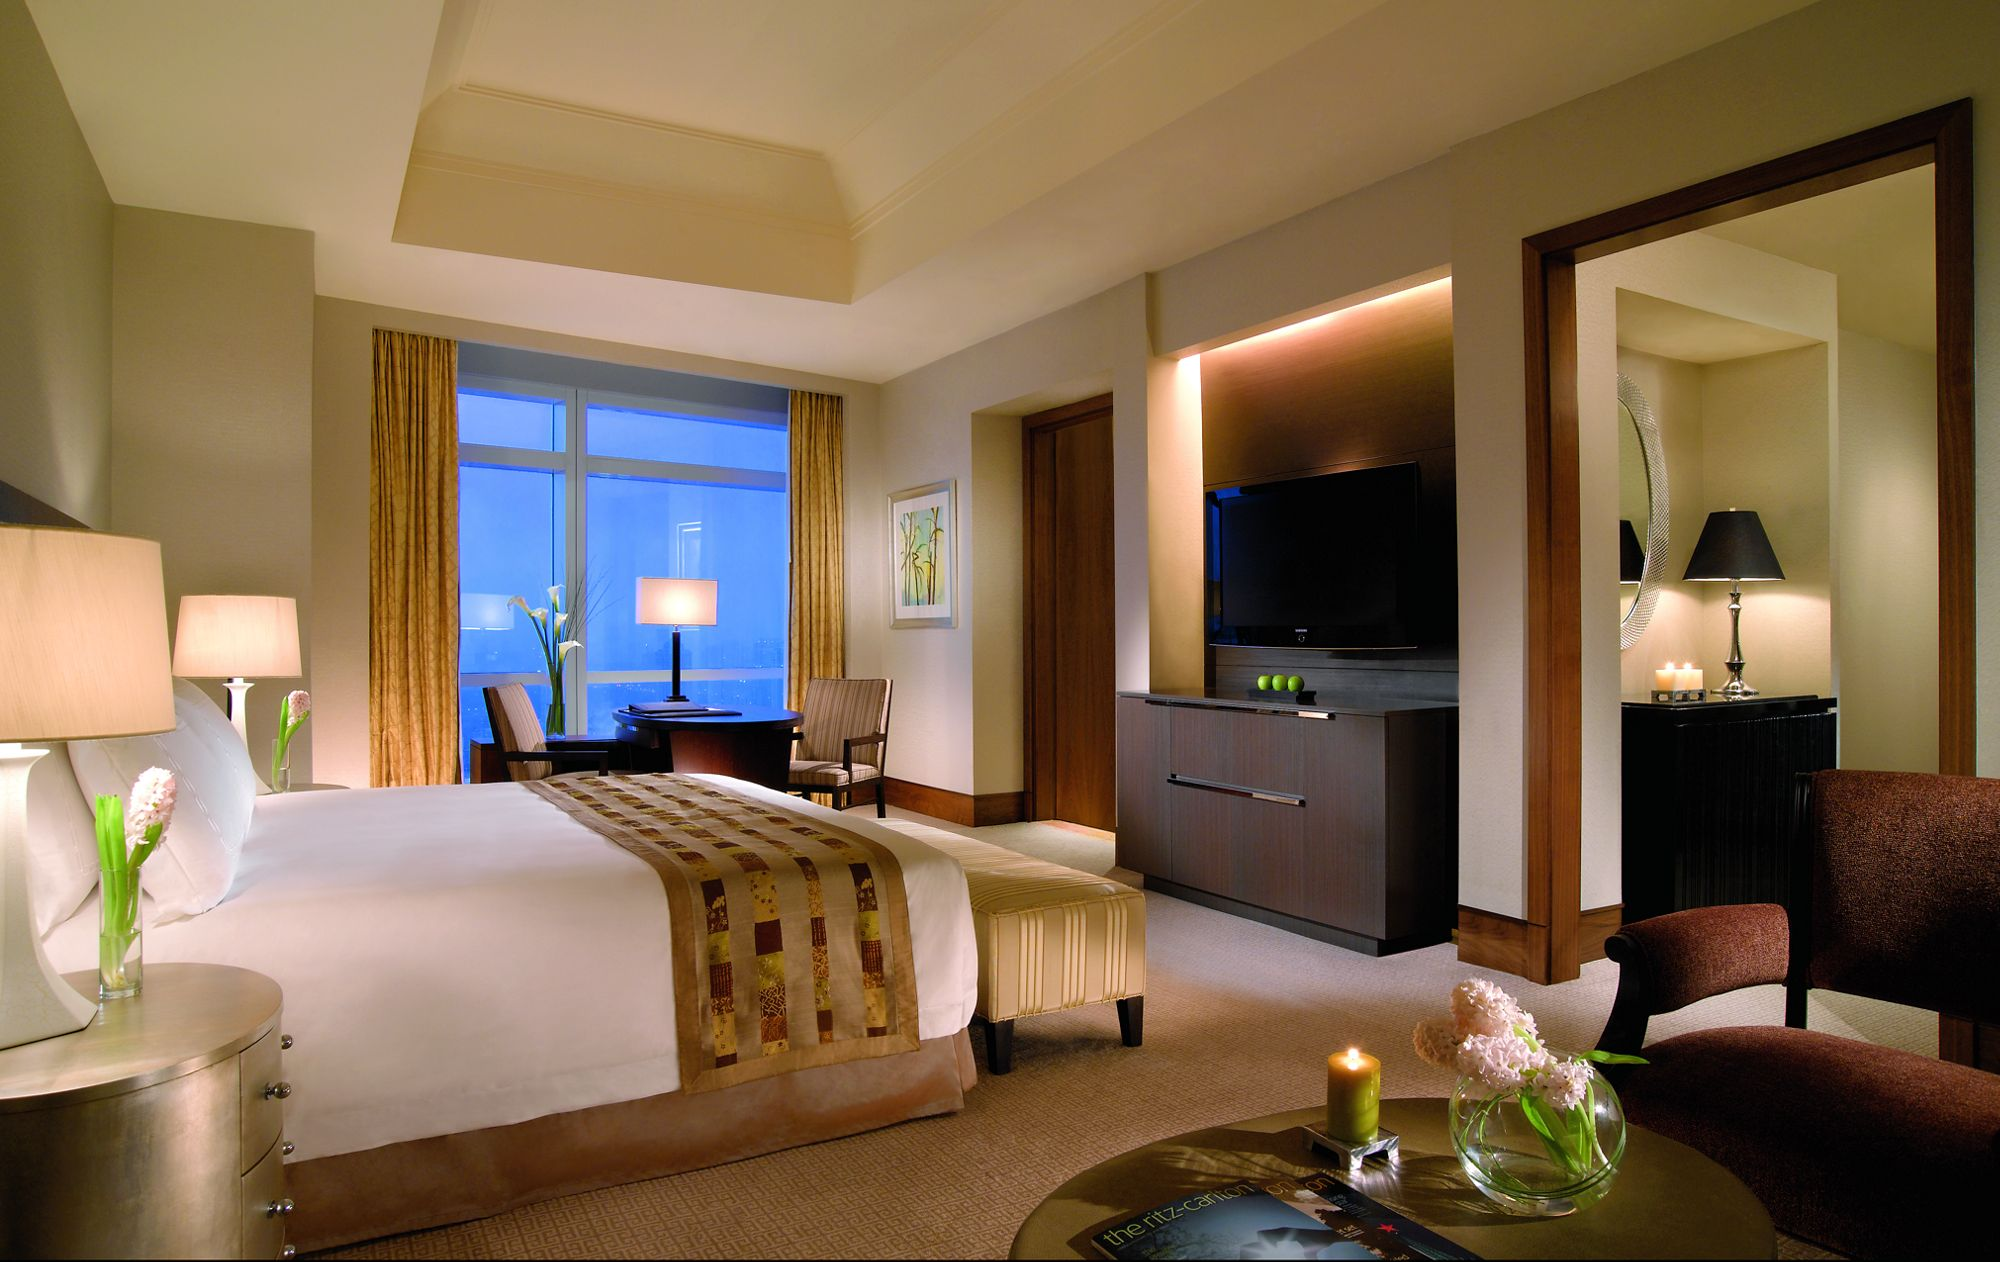 Indonesia Hotels & Resorts